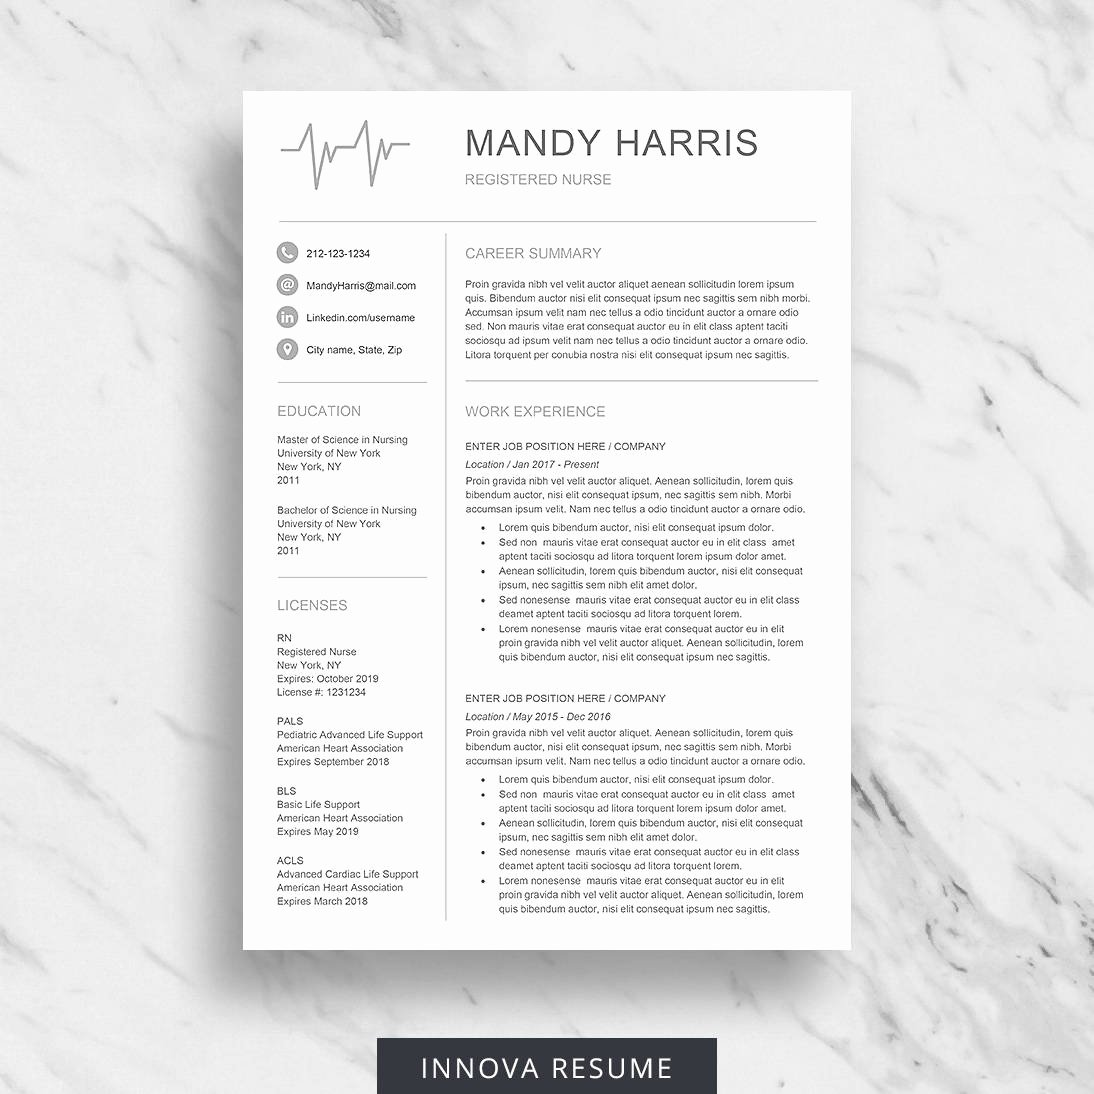 Medical Cv Template Word Awesome Nurse Resume Template for Word Medical Resume Download